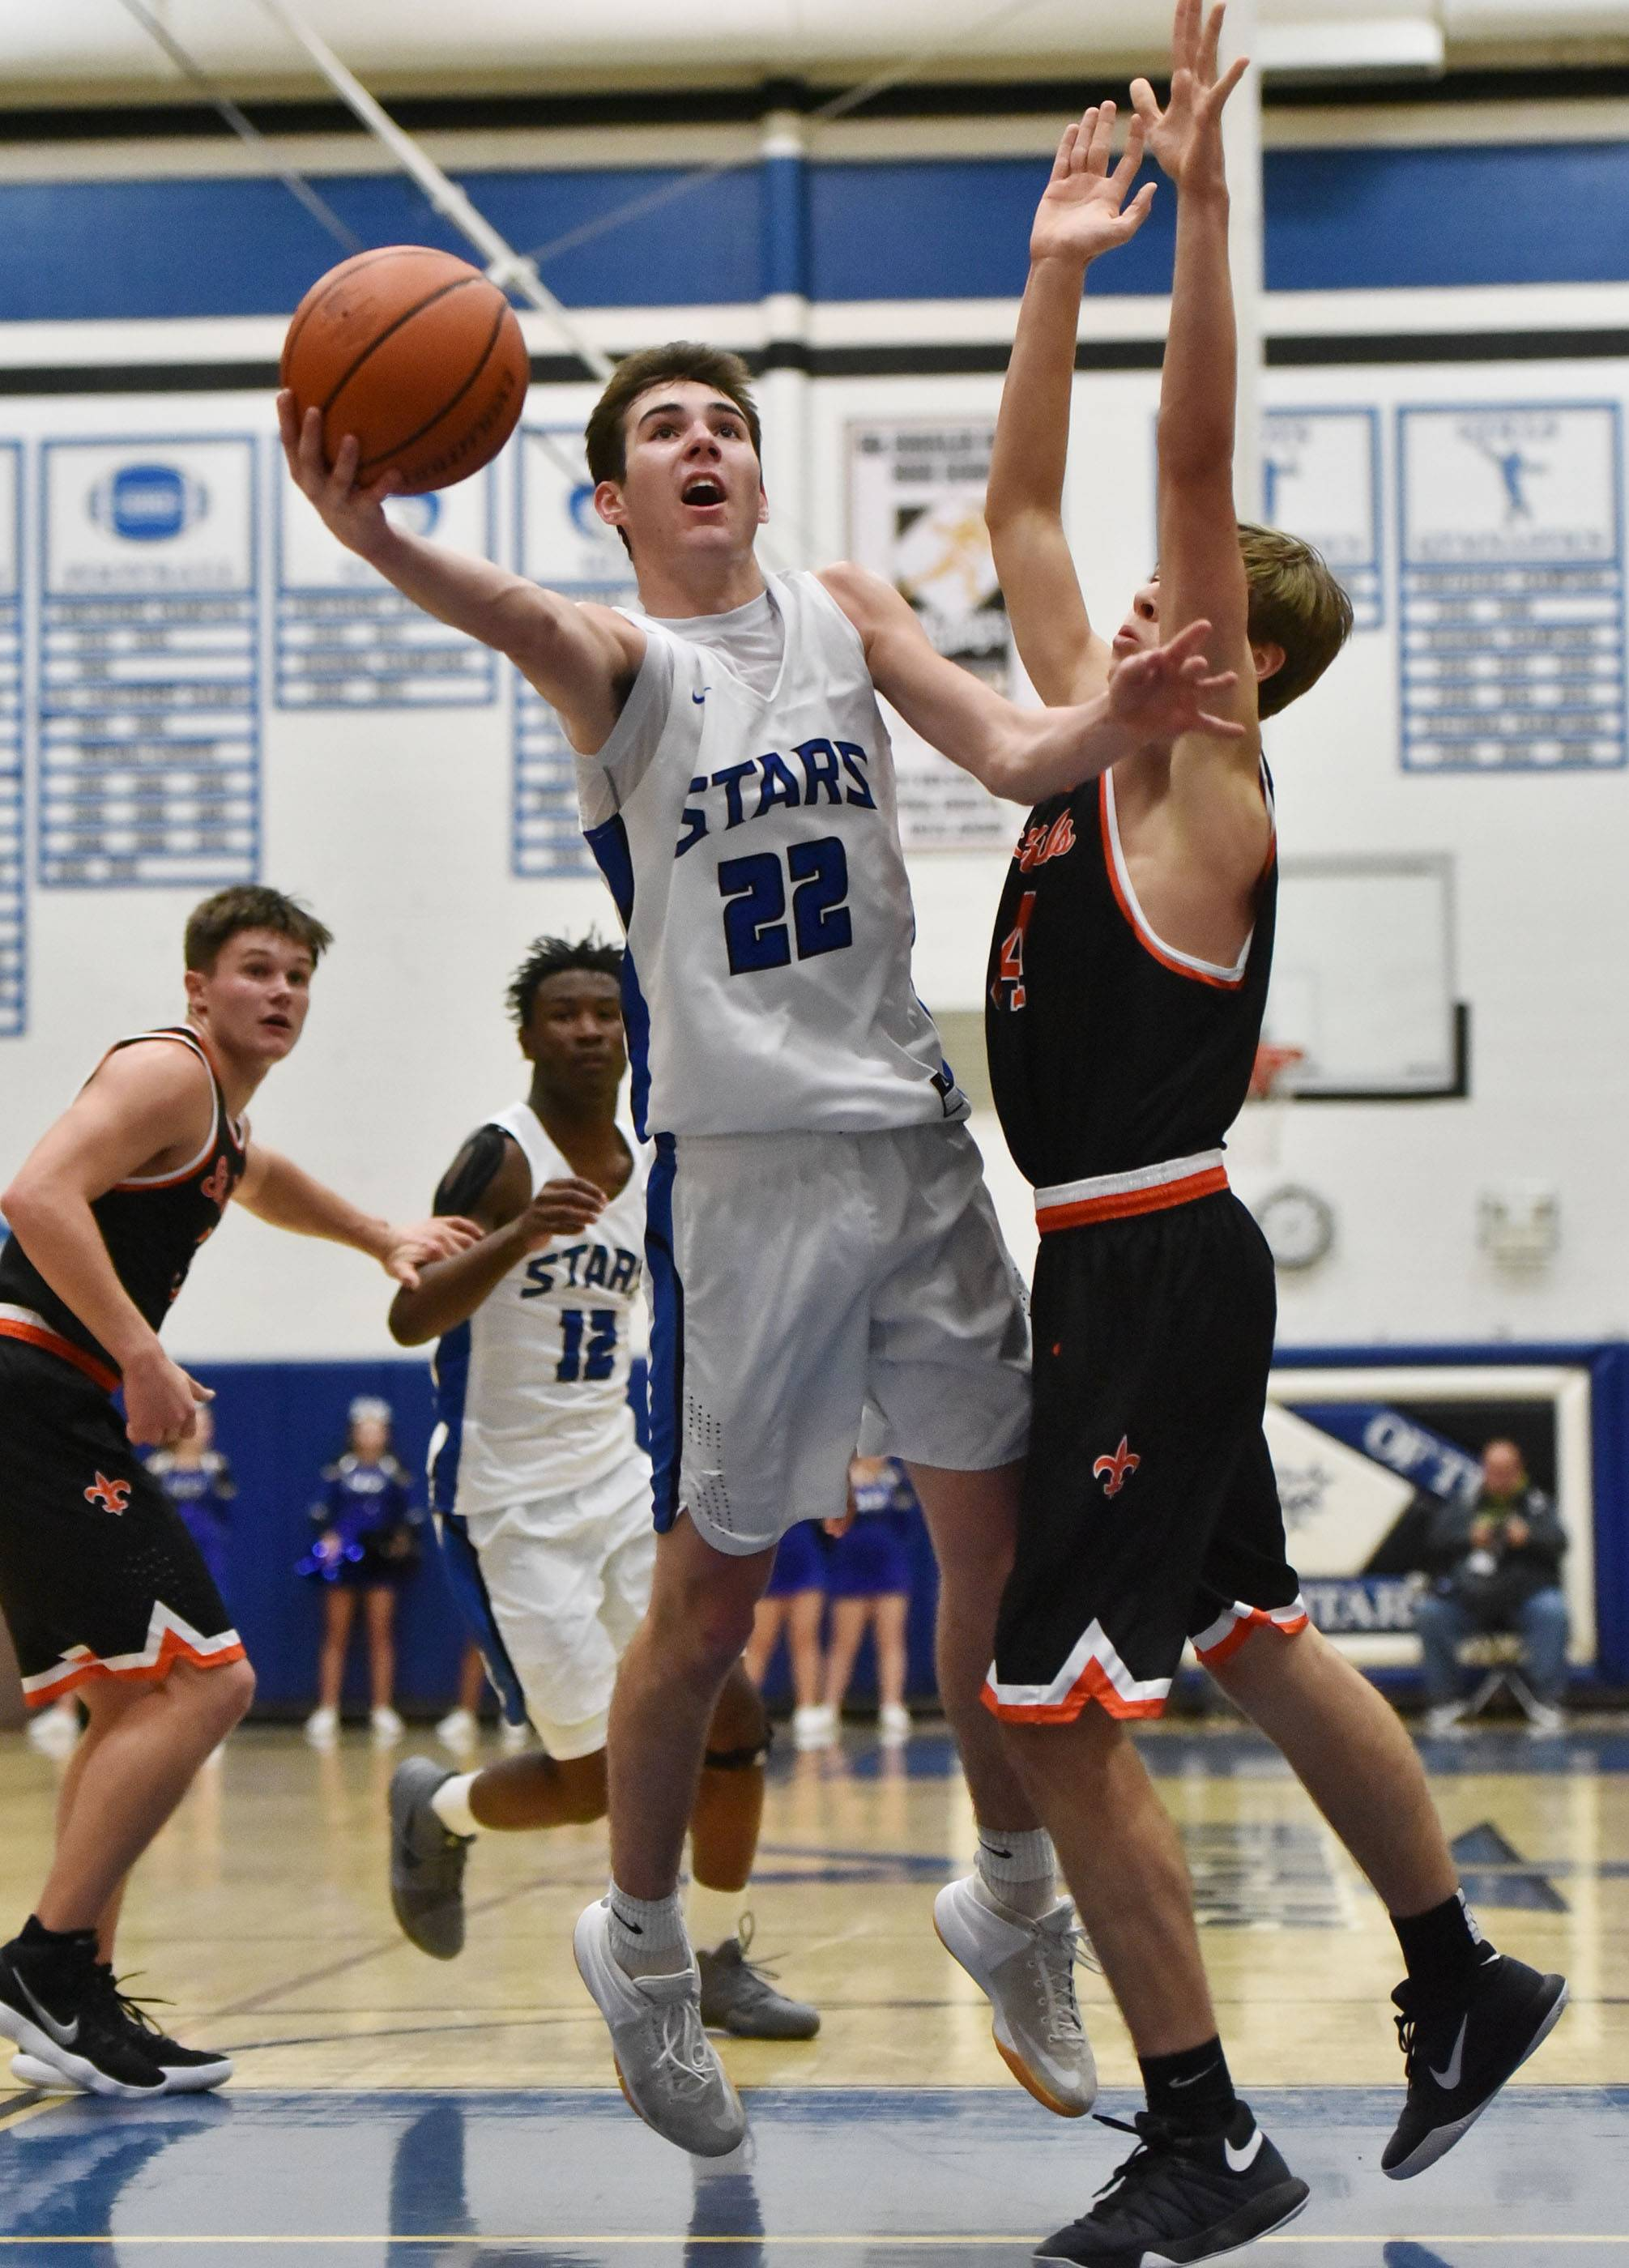 St. Charles North's Cade Callaghan scoops a shot against St. Charles East's Aidan Sullivan Friday.